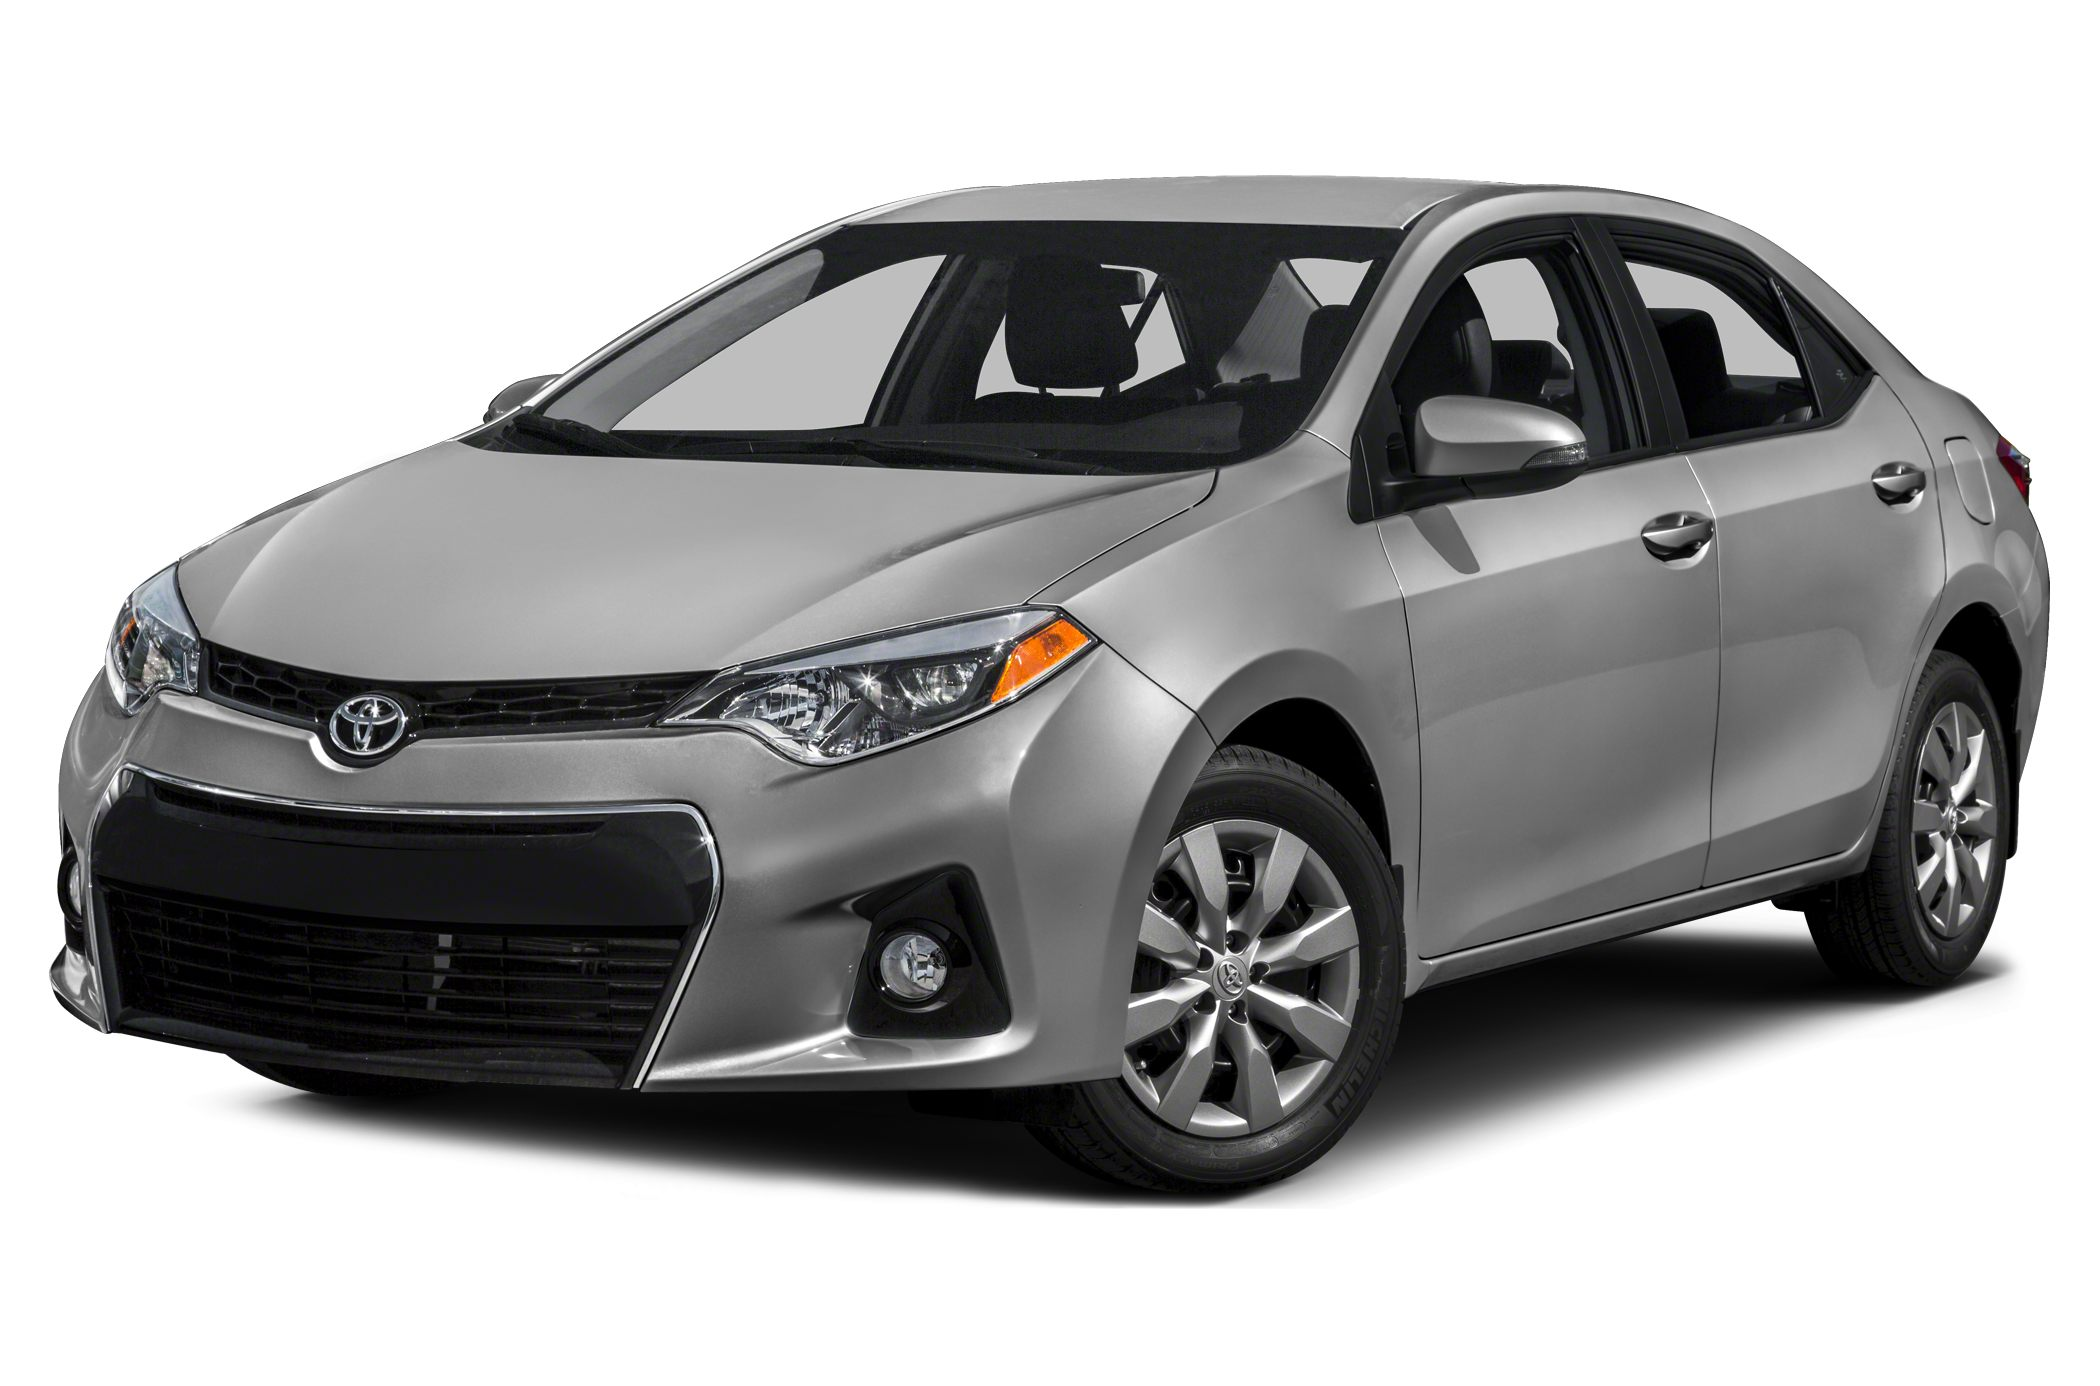 2015 Toyota Corolla S Plus Sedan for sale in Beckley for $21,720 with 0 miles.